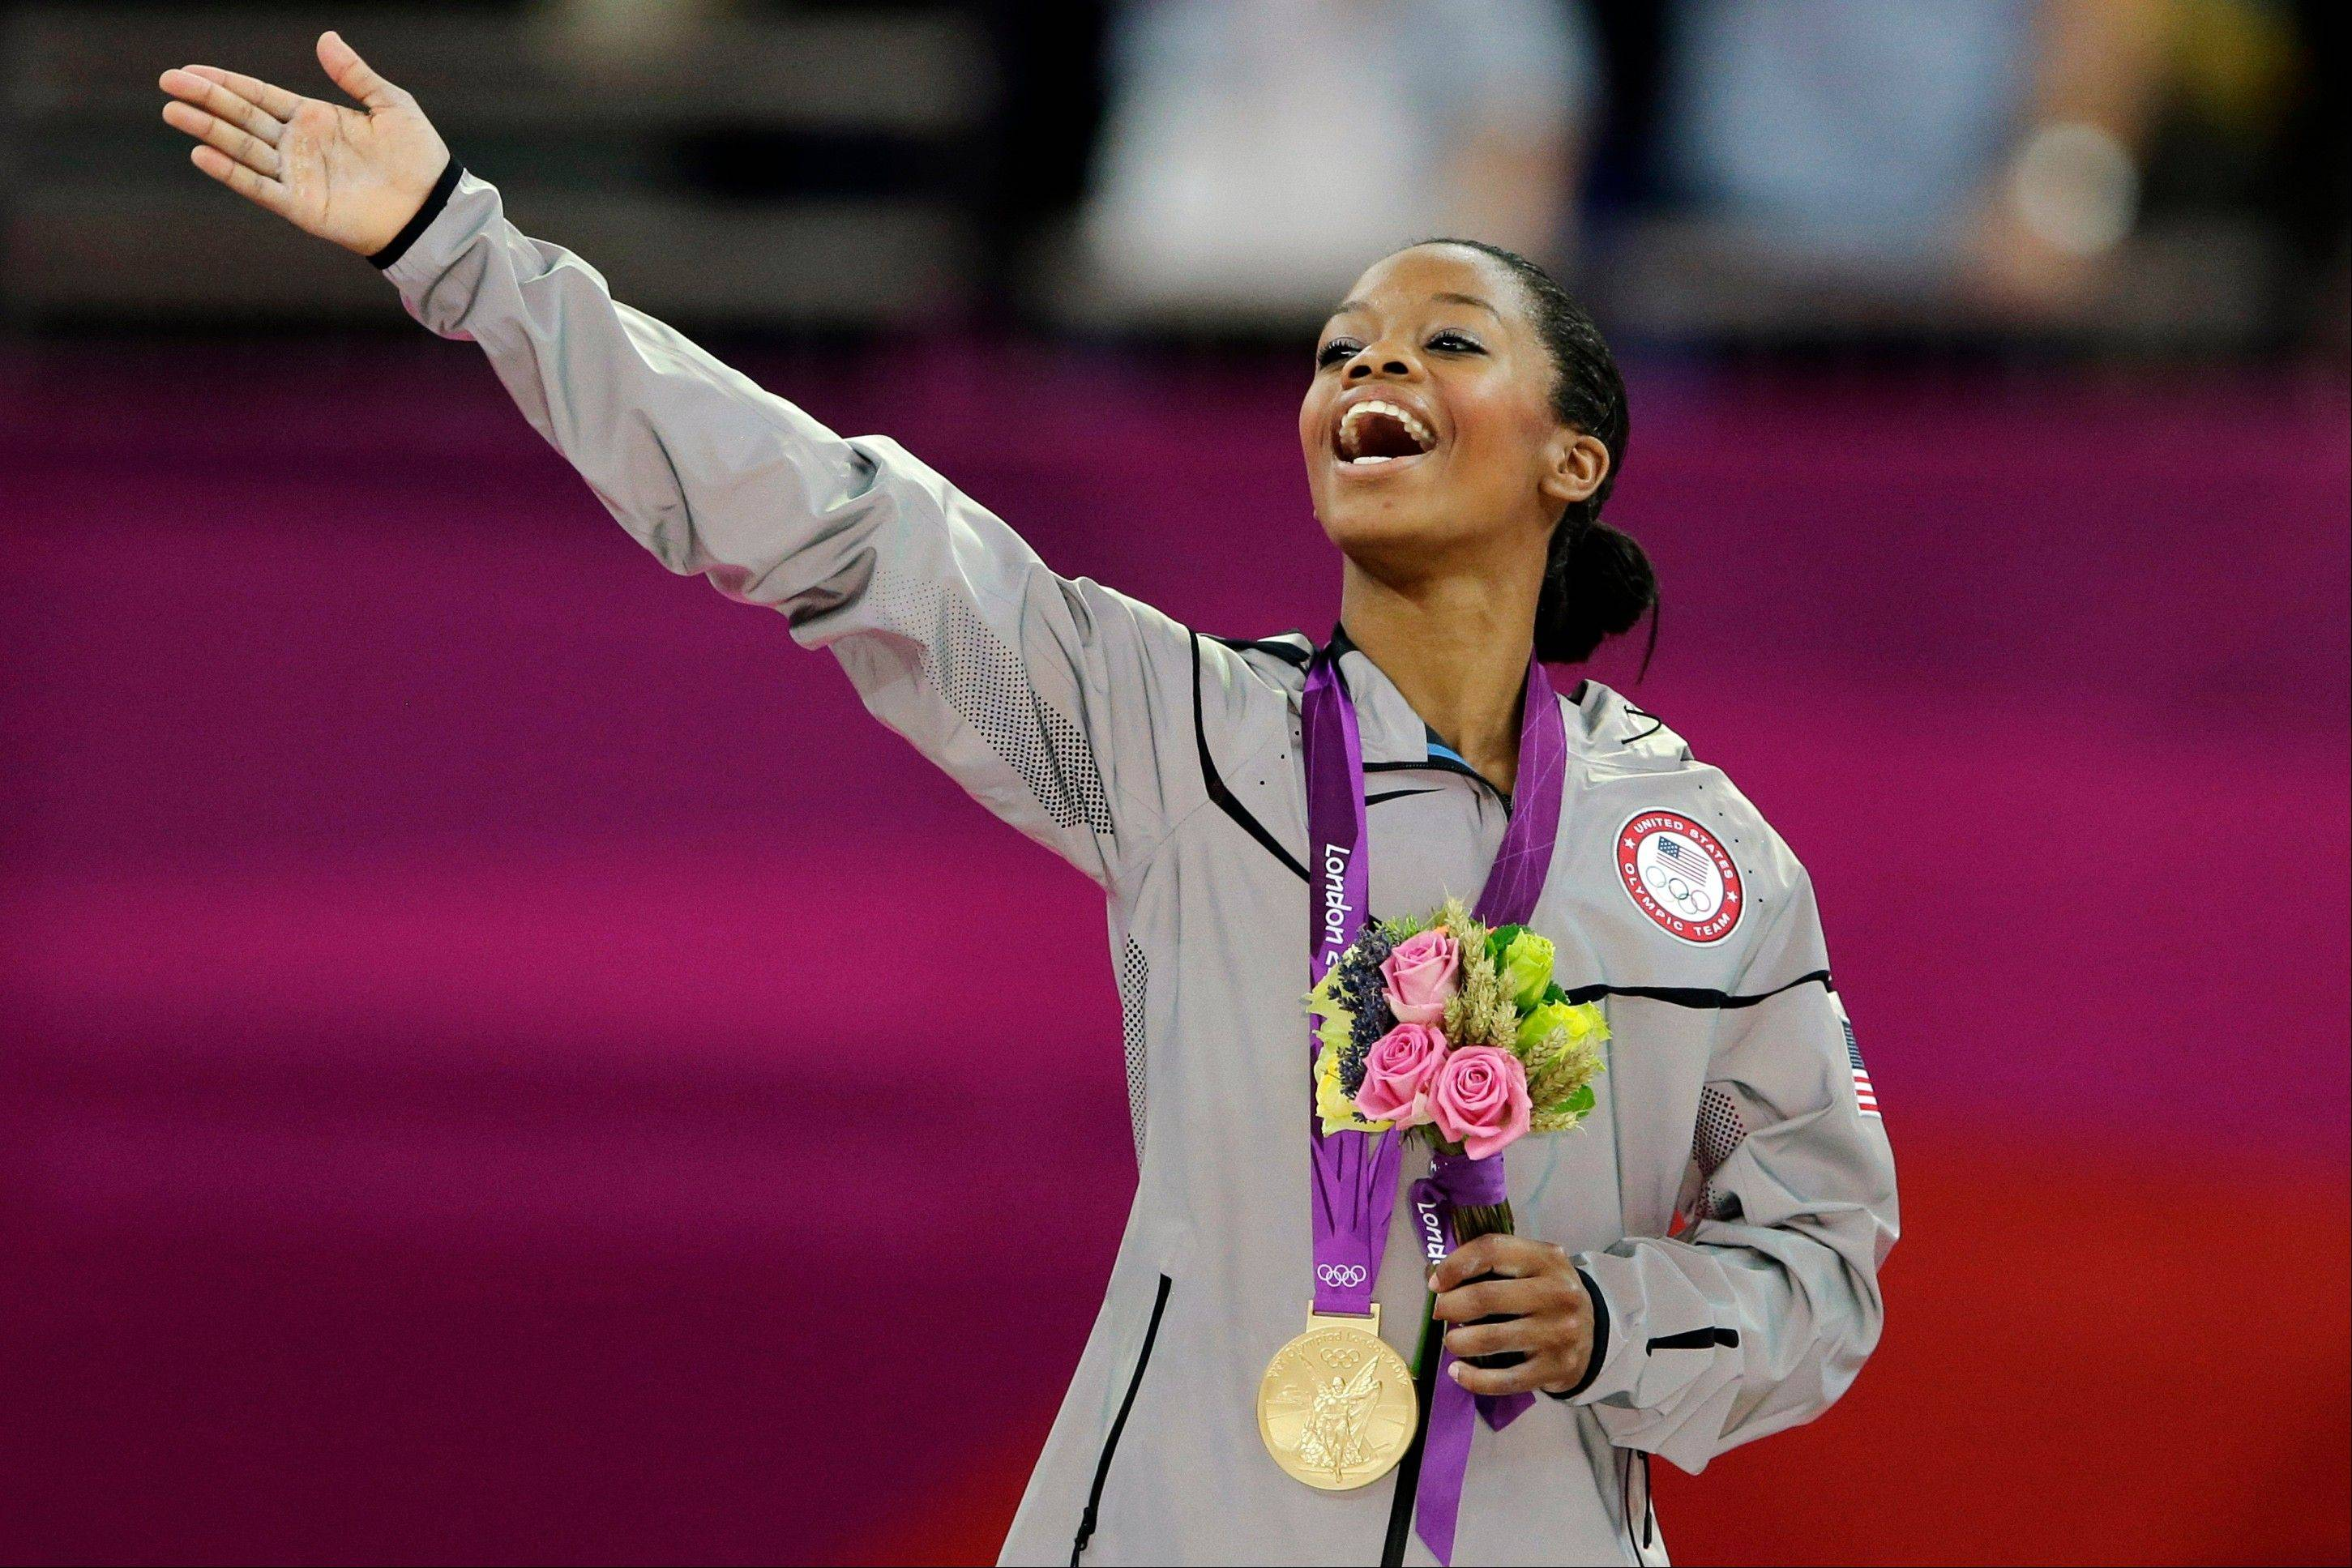 Gabrielle Douglas, the first African-American gymnast to claim the all-around Olympic title, is The Associated Pressí 2012 female athlete of the year.